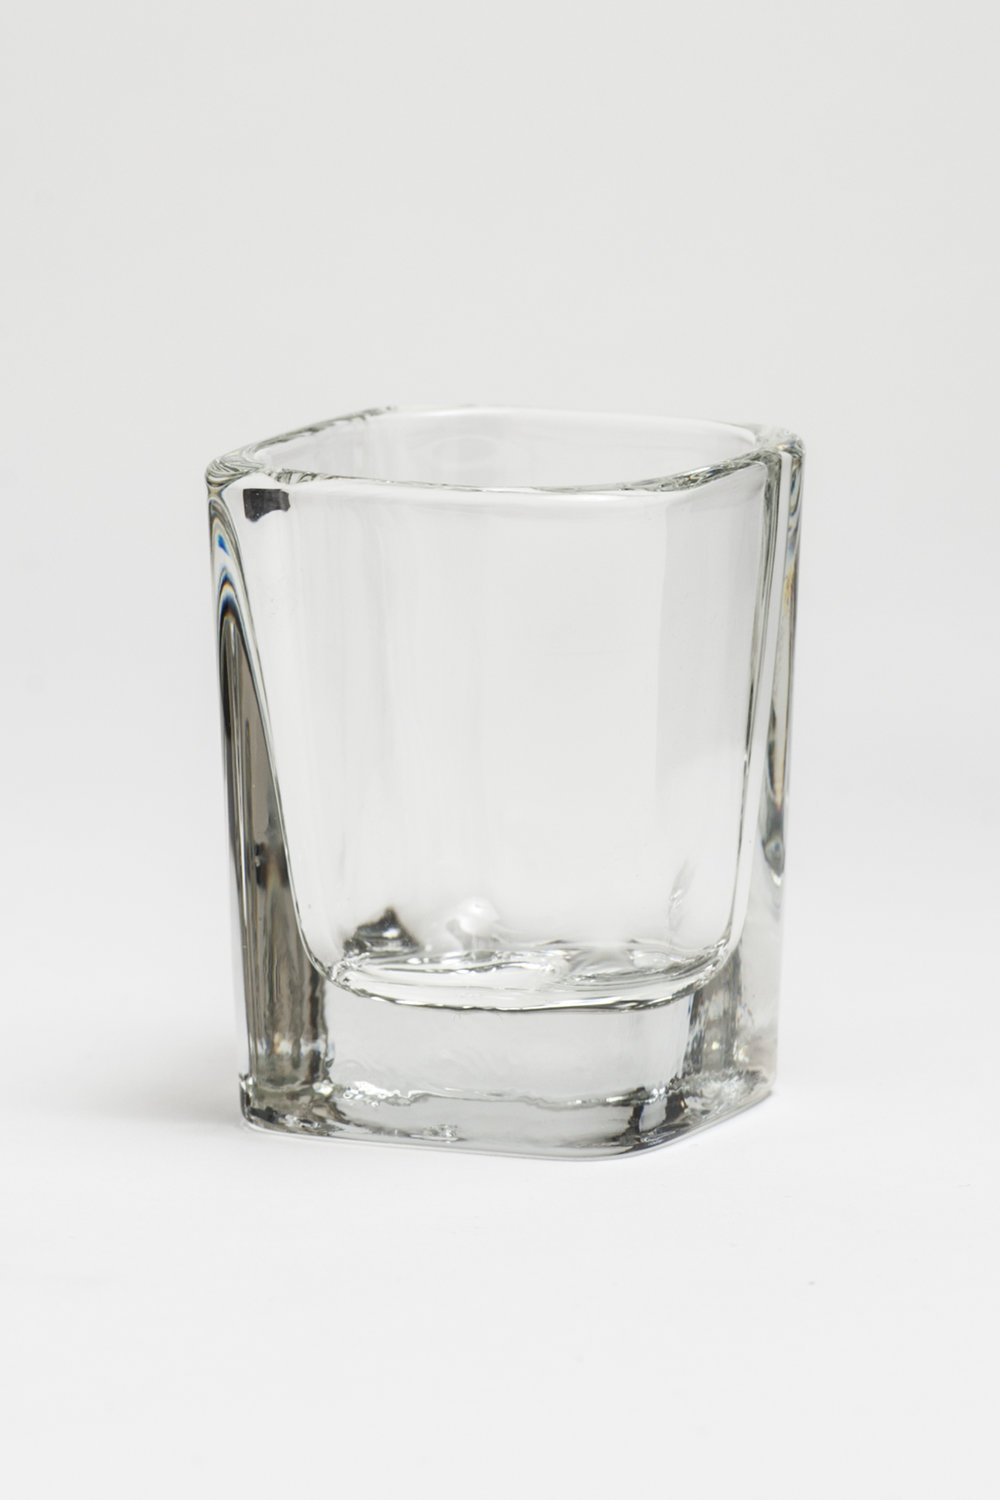 Square Shot Glass 2 oz. $0.69